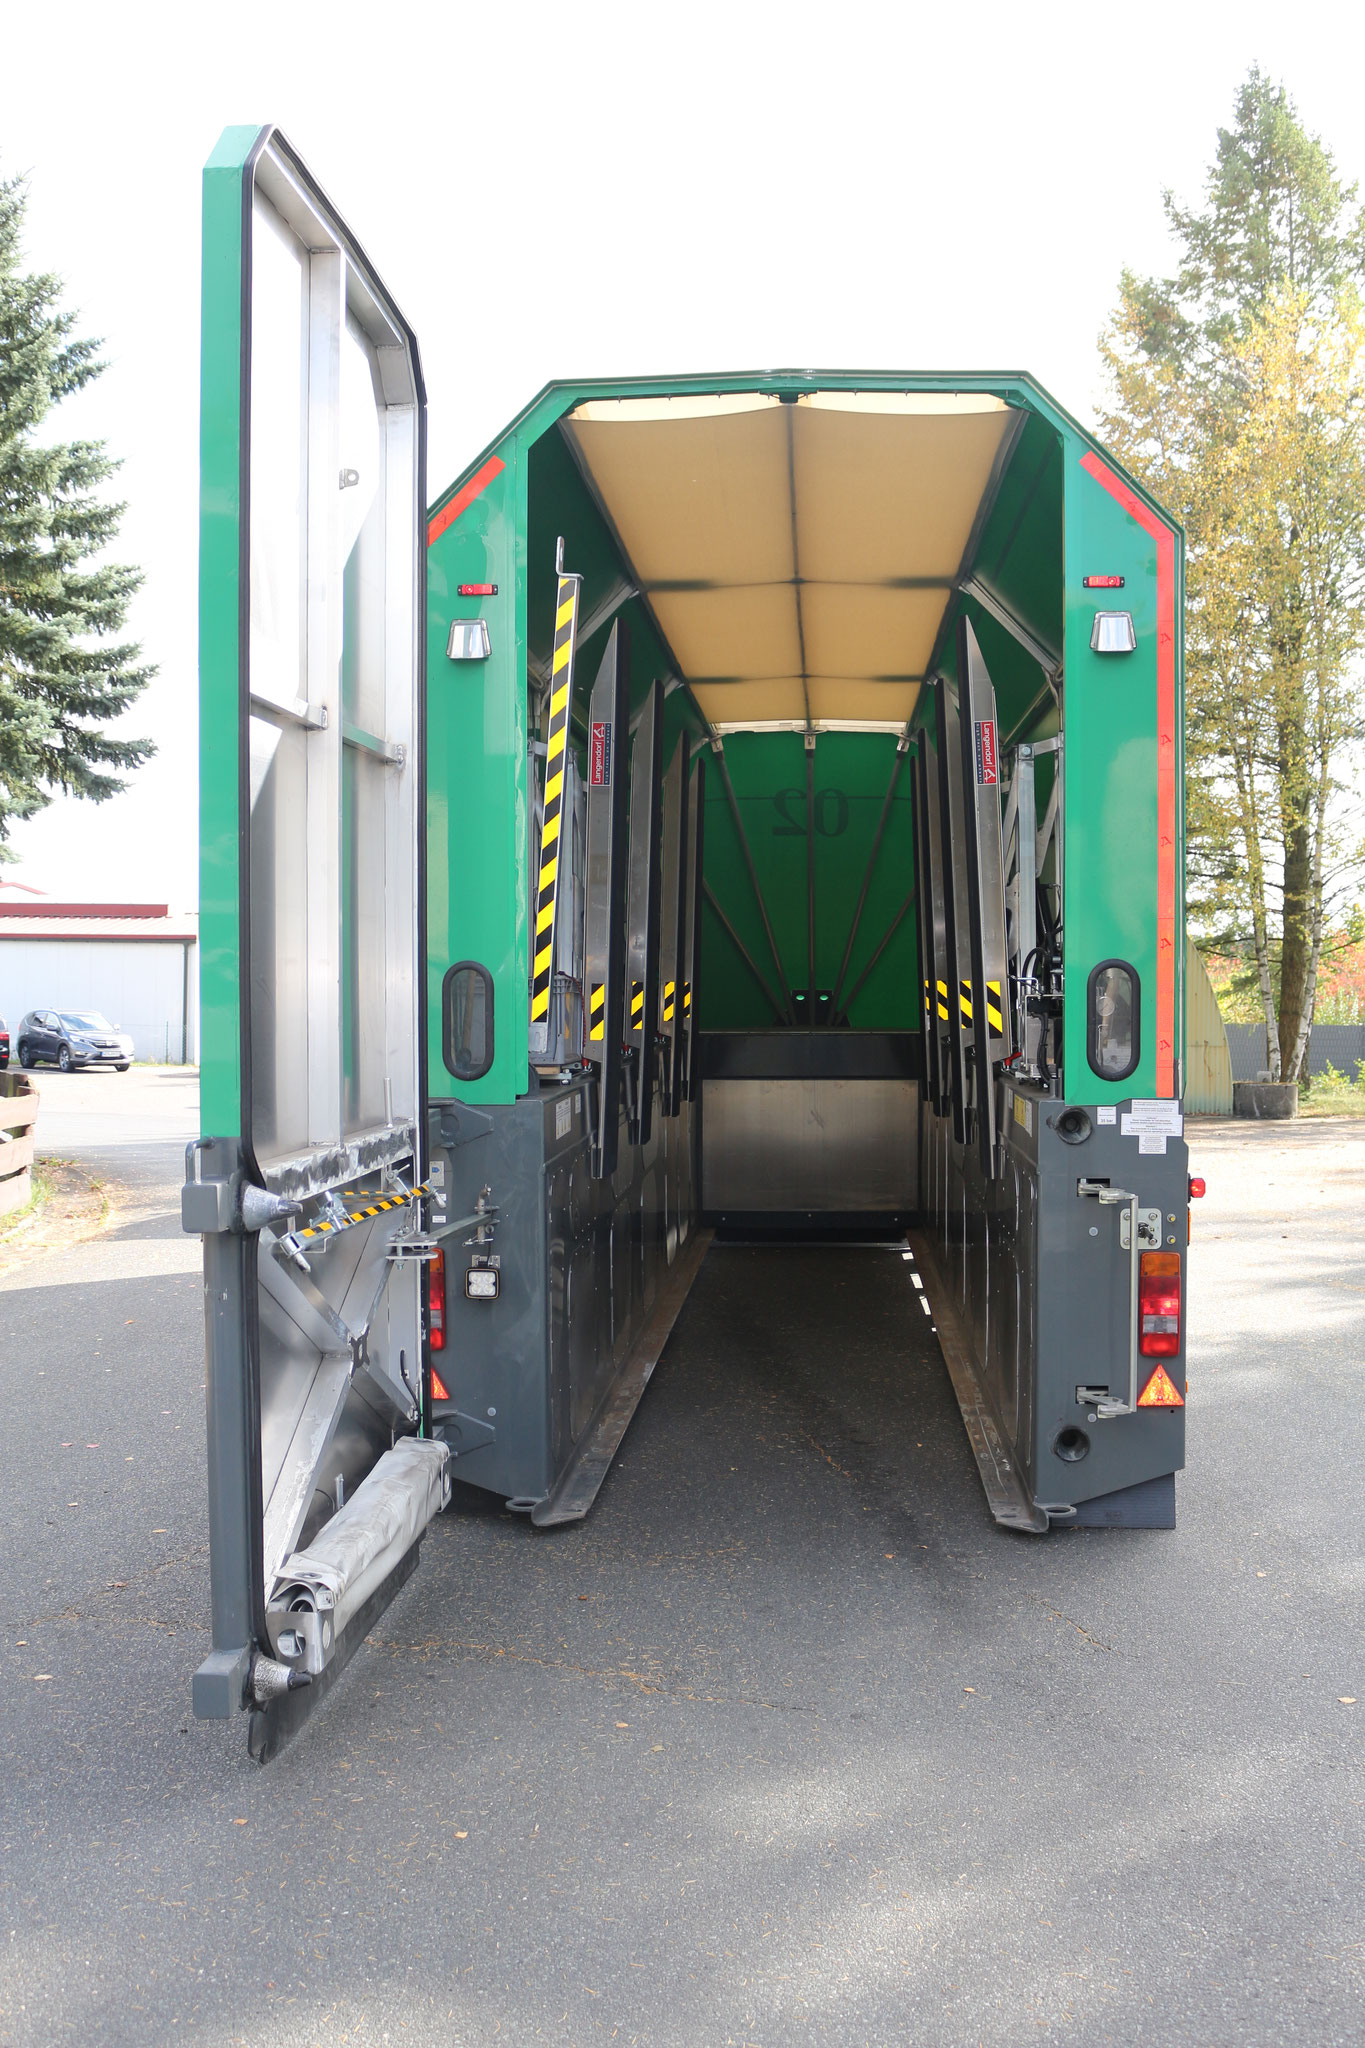 Loading Bay of an Inloader Truck